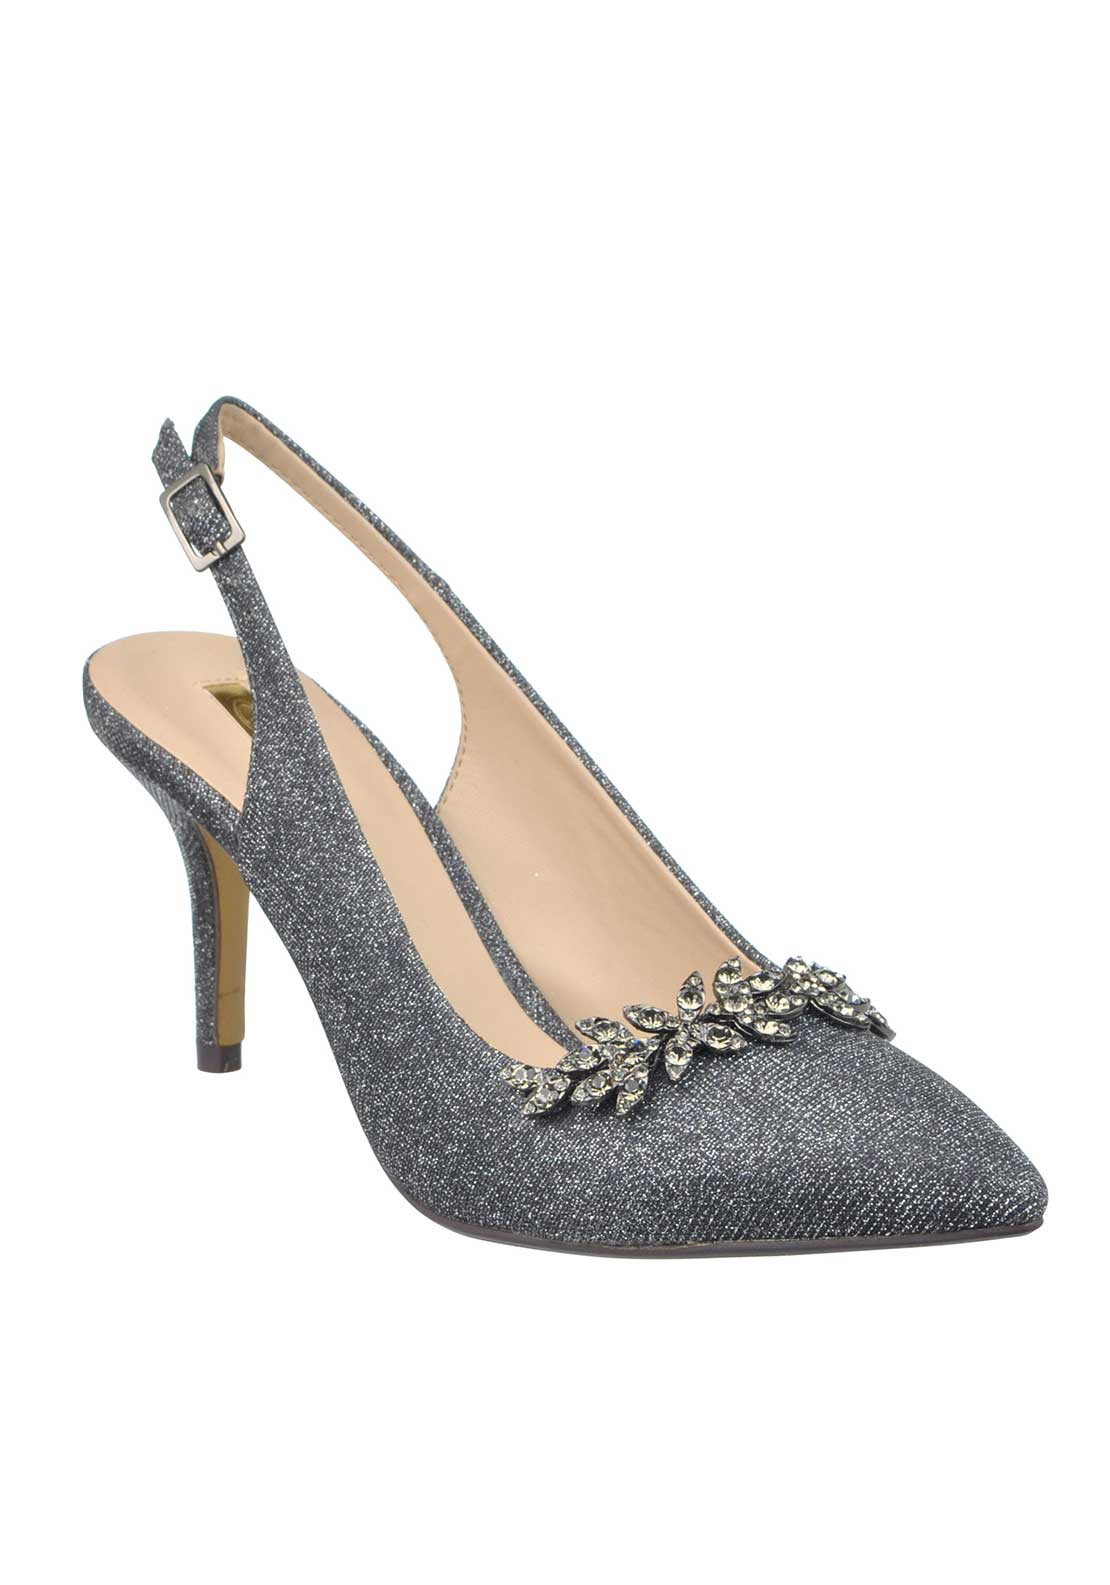 Glamour Shimmer Embellished Pointed Toe Sling Back Heeled Shoes, Pewter